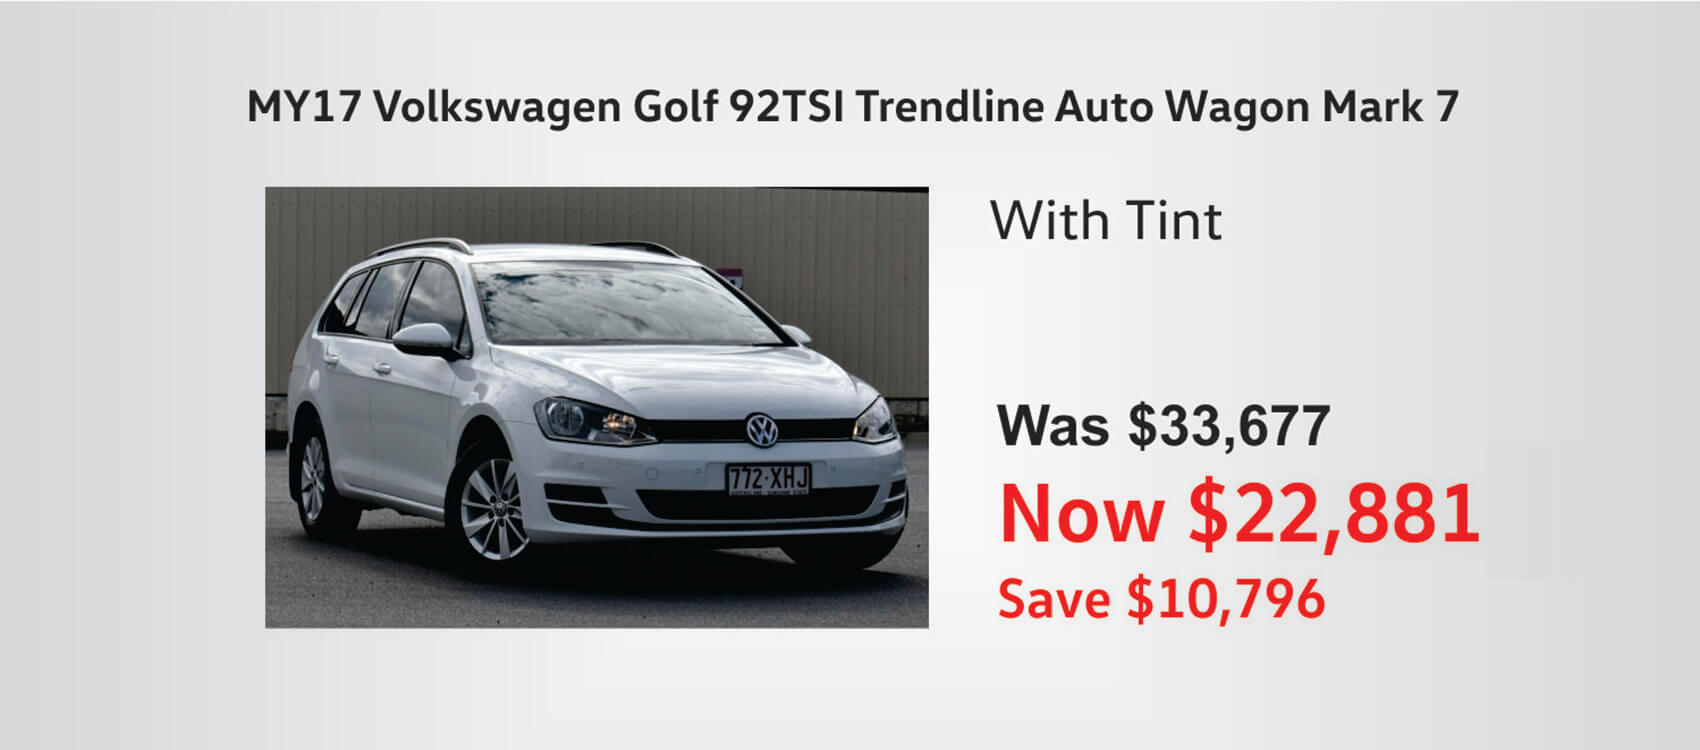 Grab a great deal on a white VW Golf Trendline Wagon